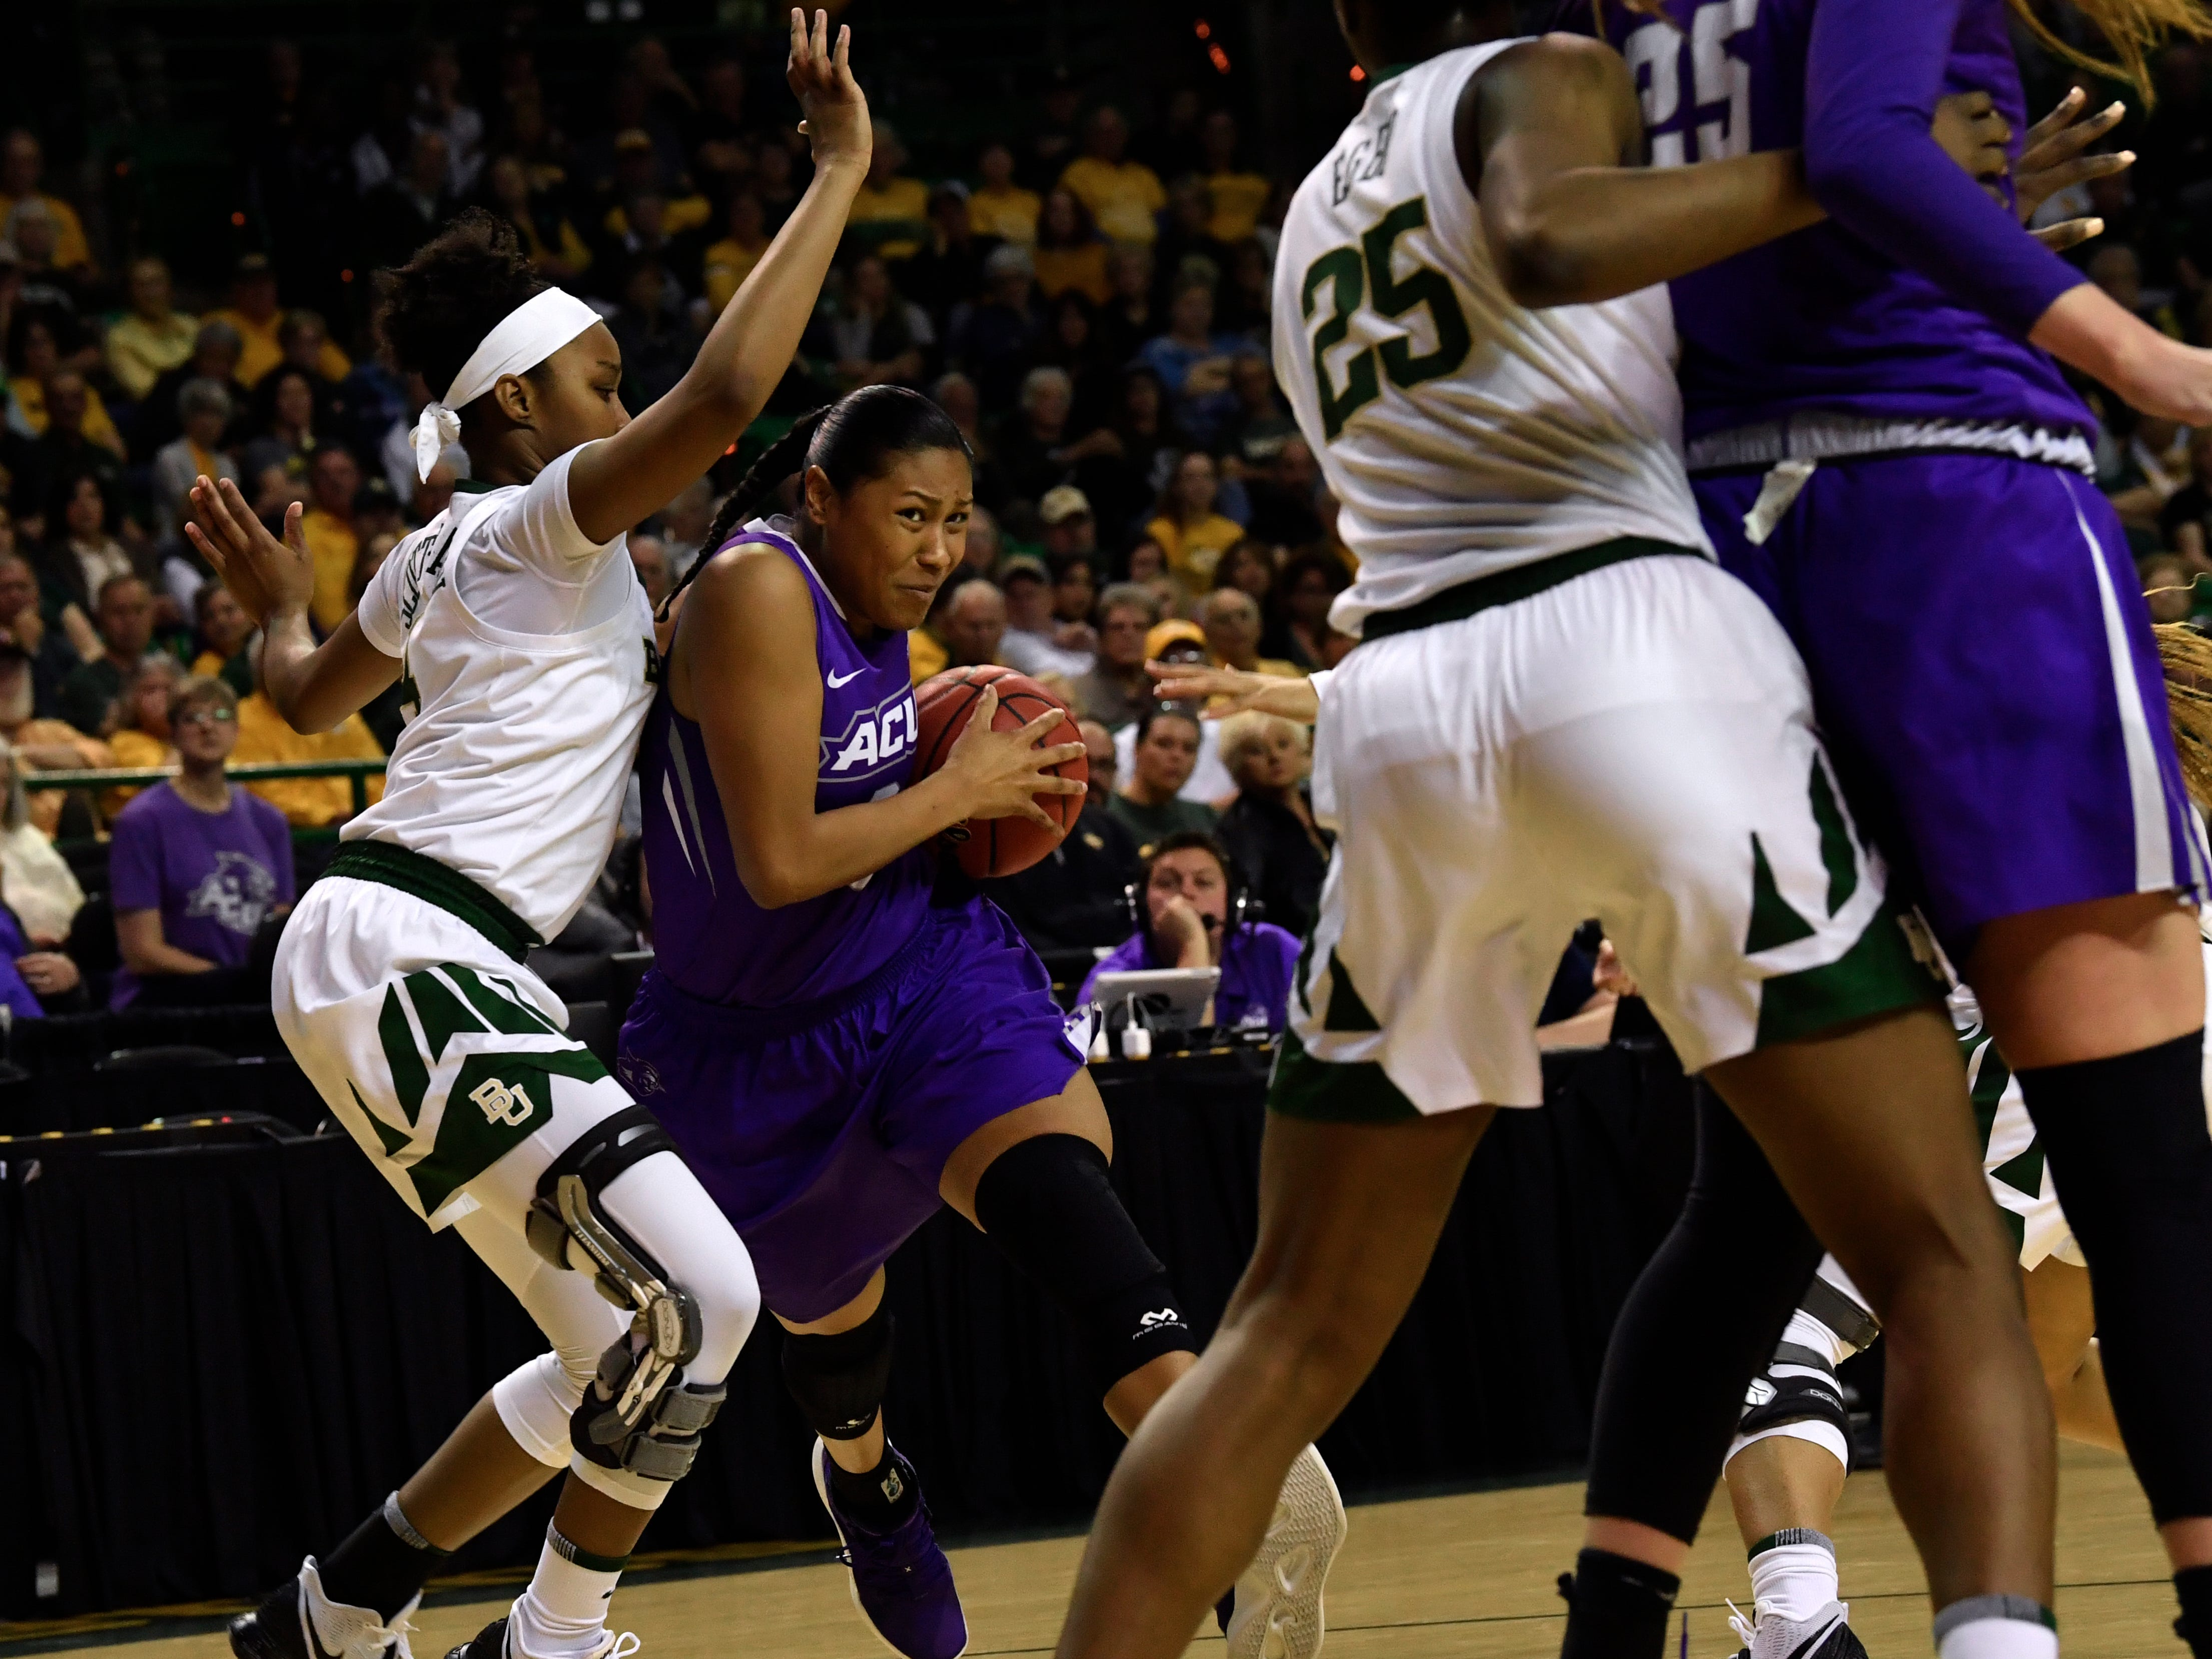 ACU forward Dominque Golightly drives for the paint past Baylor's Honesty Scott-Grayson during Saturday's NCAA Tournament women's round 1 basketball game March 23, 2019. Baylor defeated Abilene Christian University, 95-38.